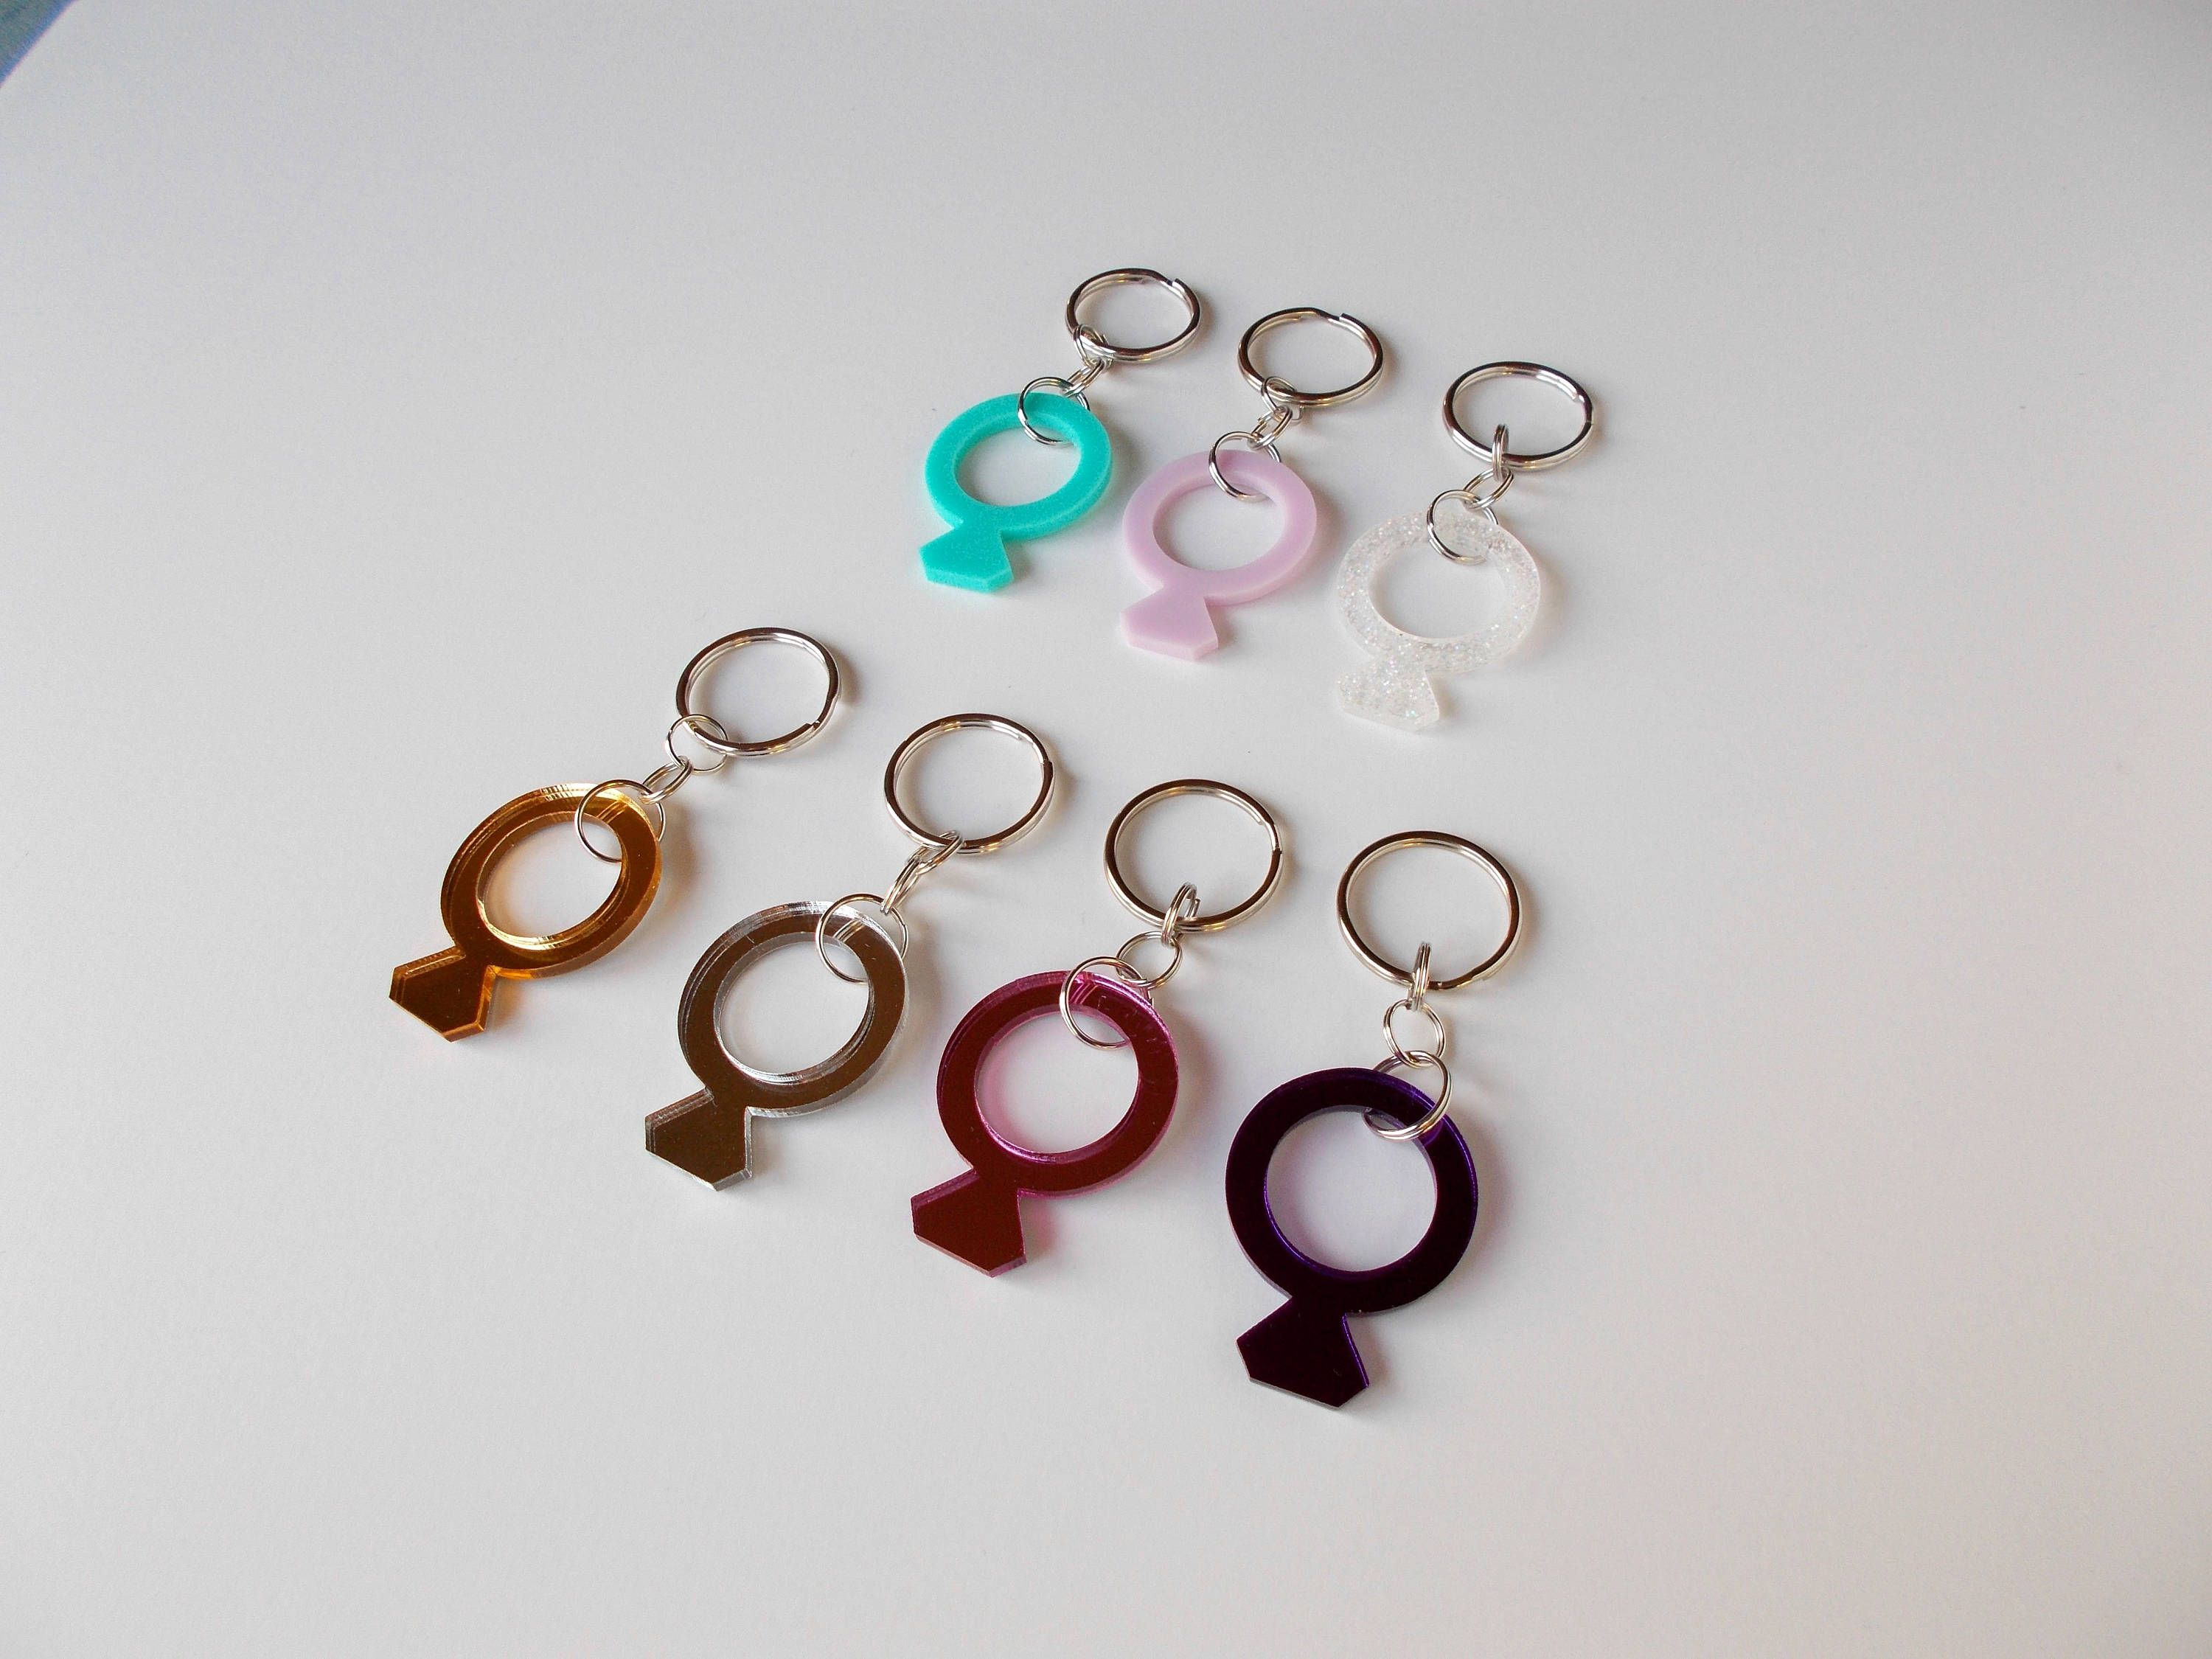 Acrylic Ring Keychain, Bachelorette Gifts, Bridal Shower